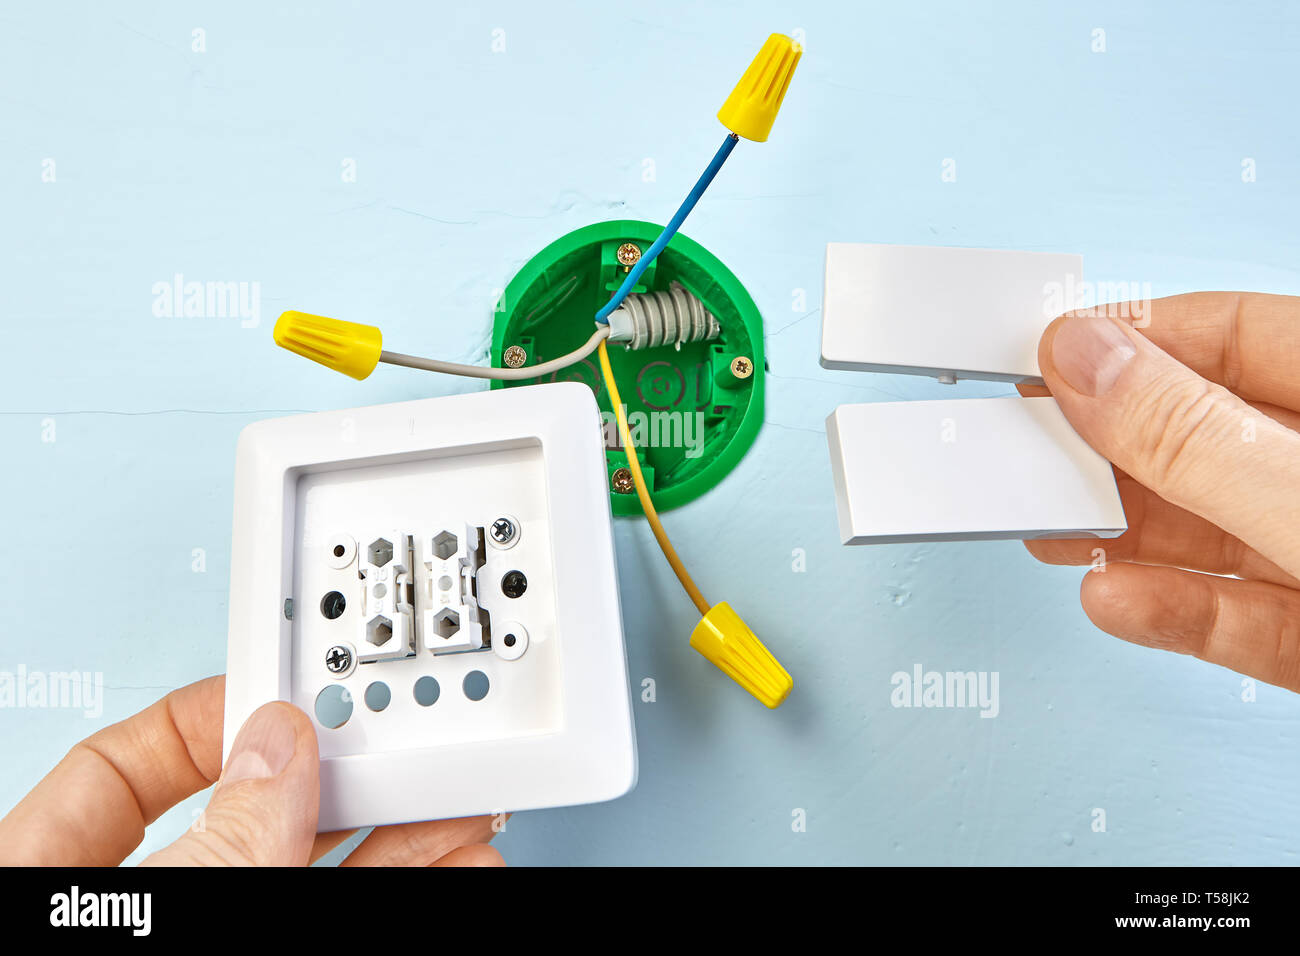 hight resolution of installation of new button for two button light switch round outlet box for wall light on the background